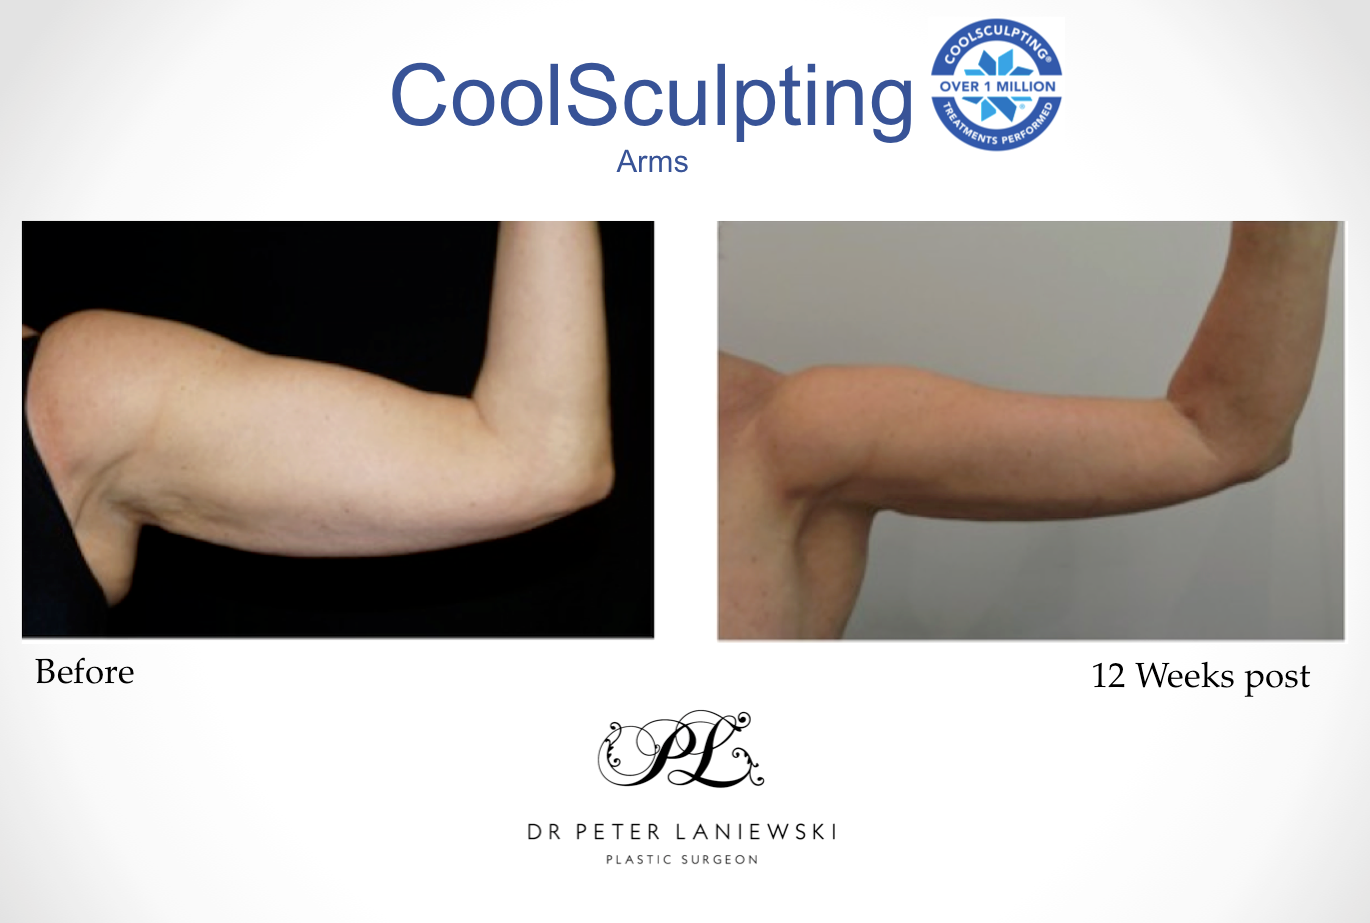 Wendy-Willings-Arms-CoolSculpting